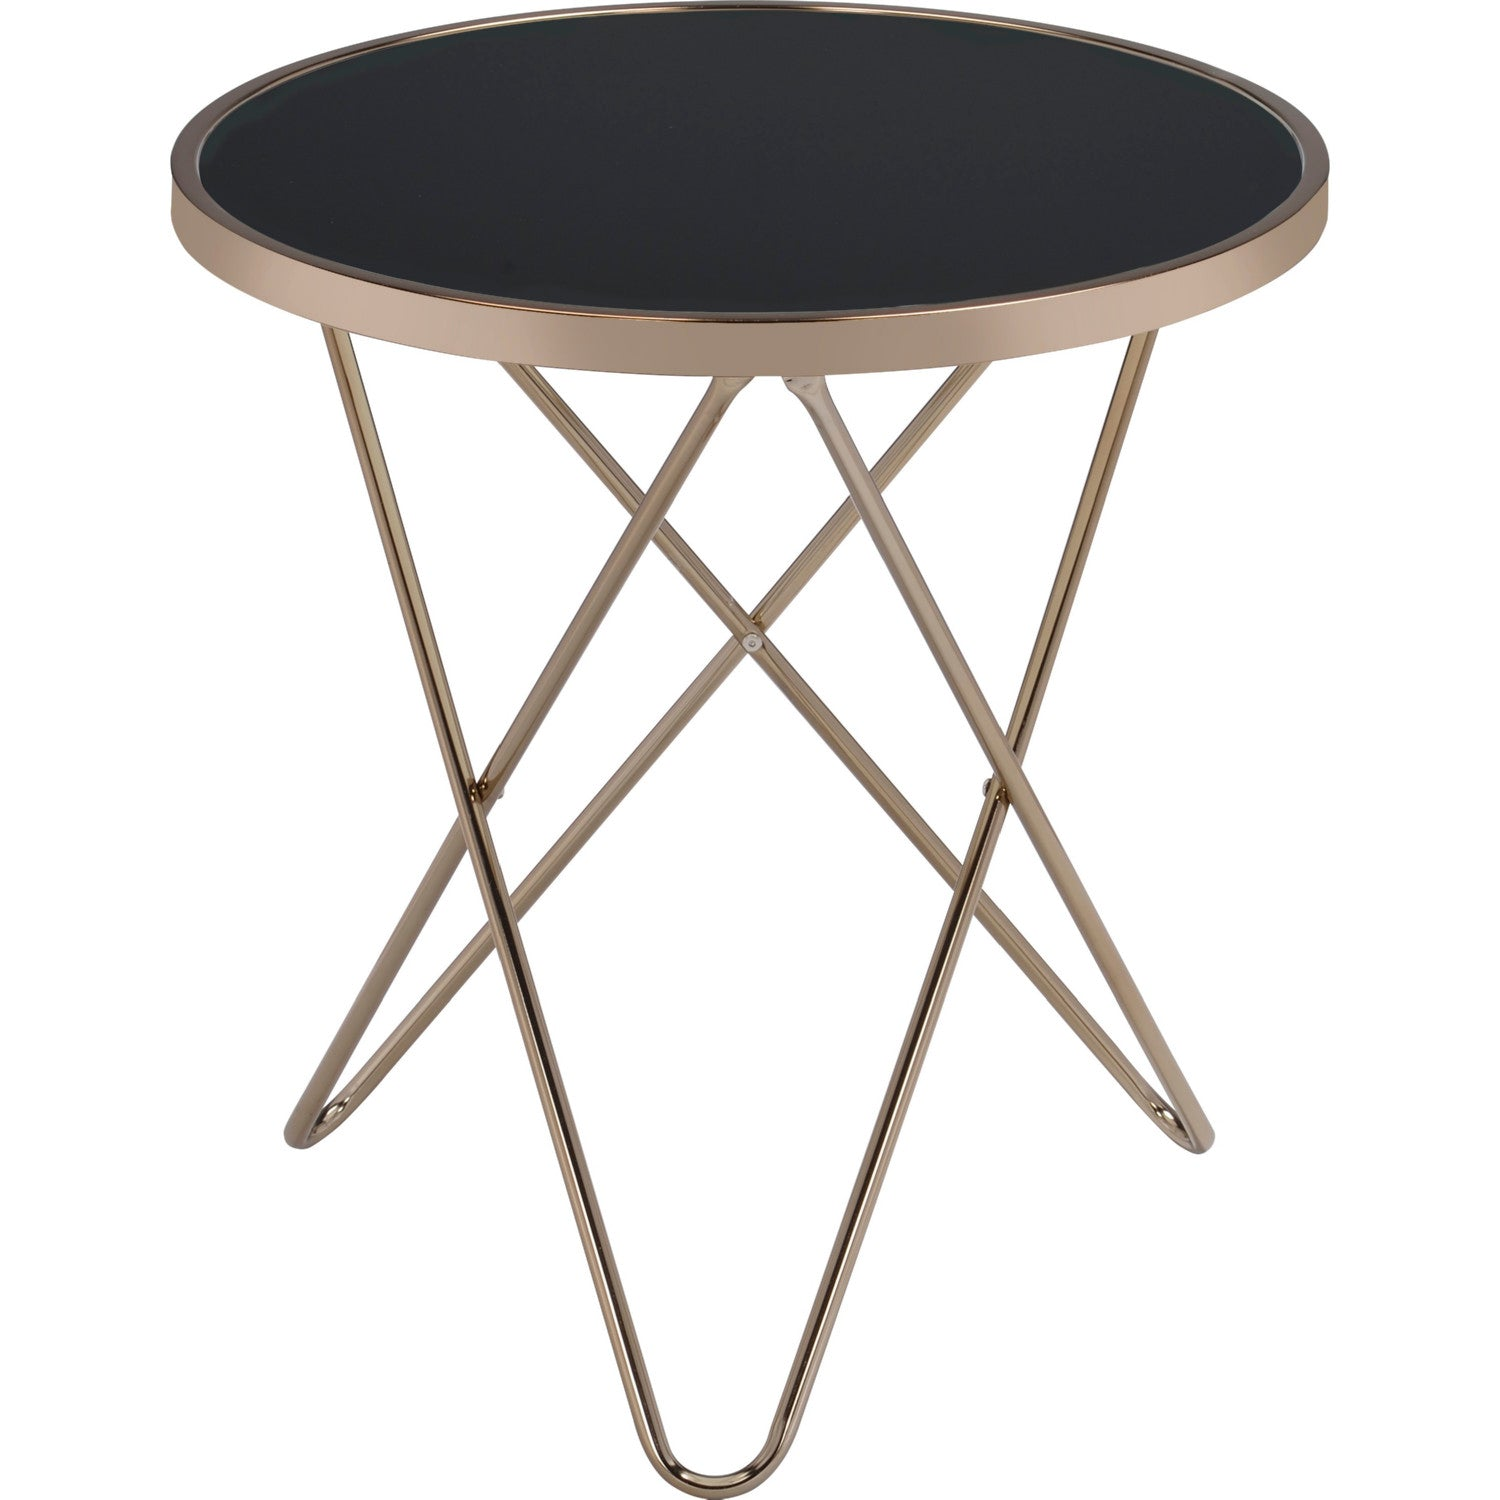 Round End Table Side Table Bedroom Nightstand Metal Base In Champagne & Black Glass